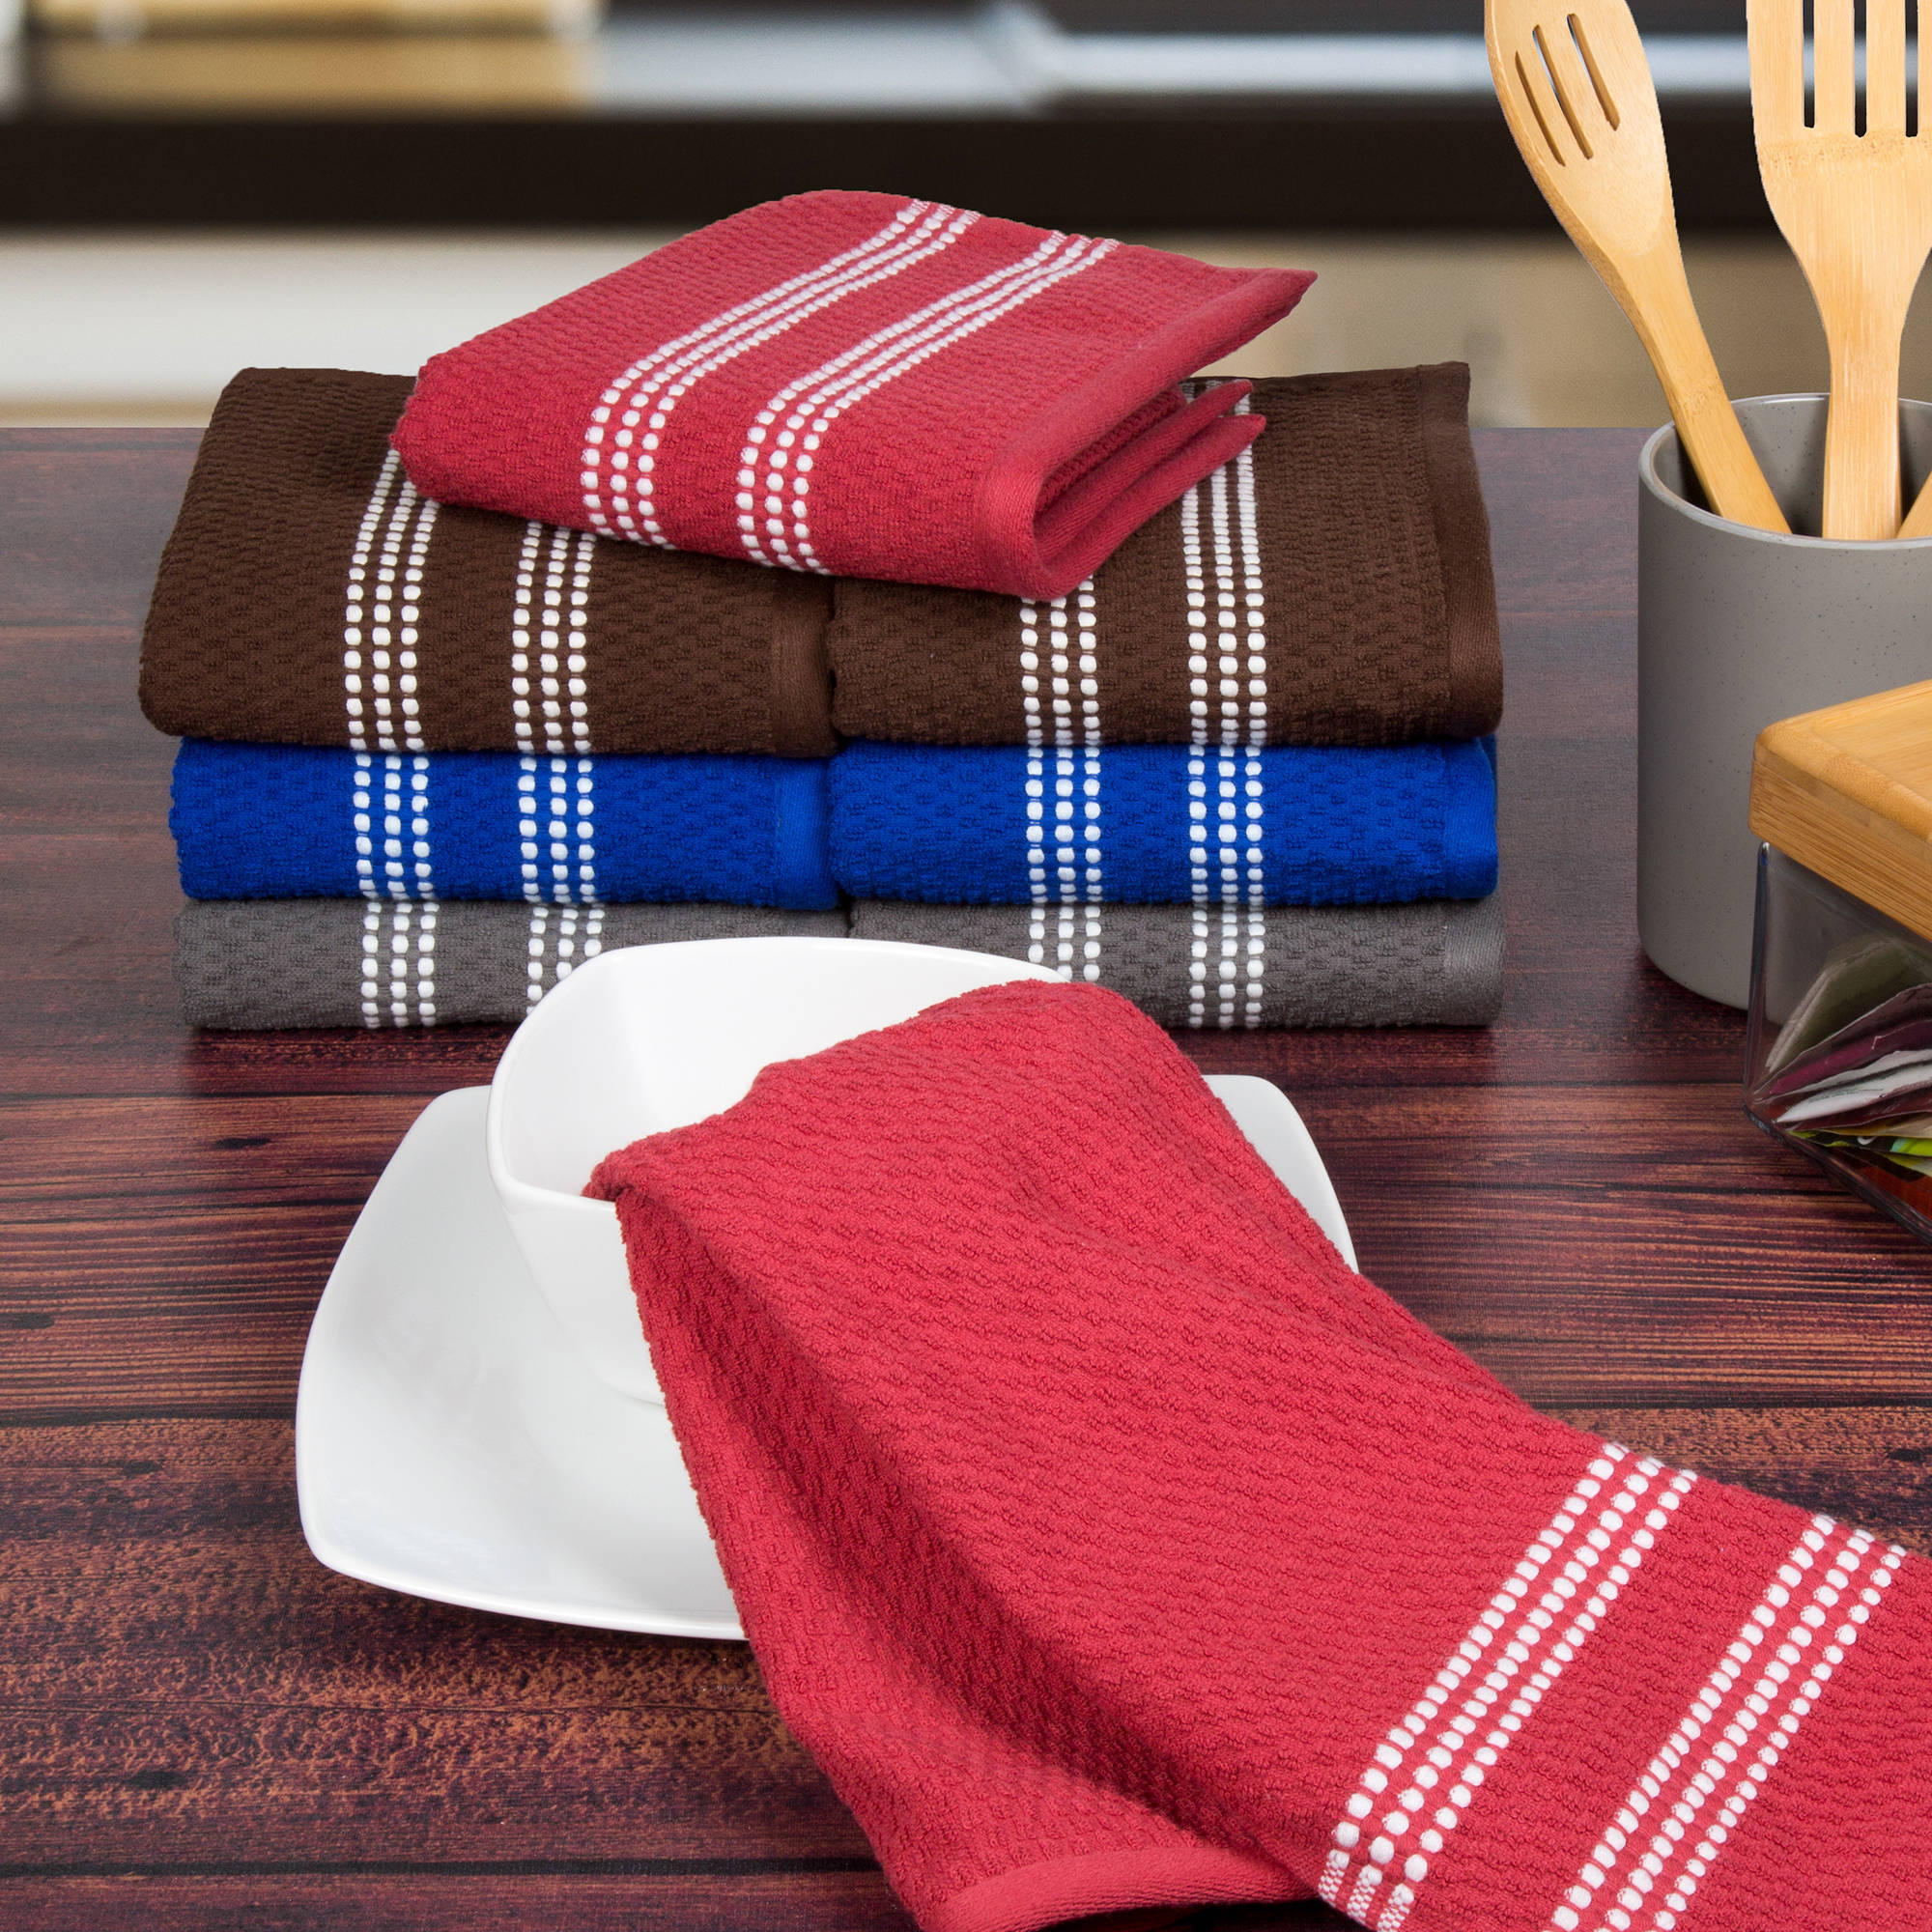 Click here to buy Somerset Home 8-Piece Cotton Popcorn Terry Kitchen Towel Set by Trademark Global LLC.